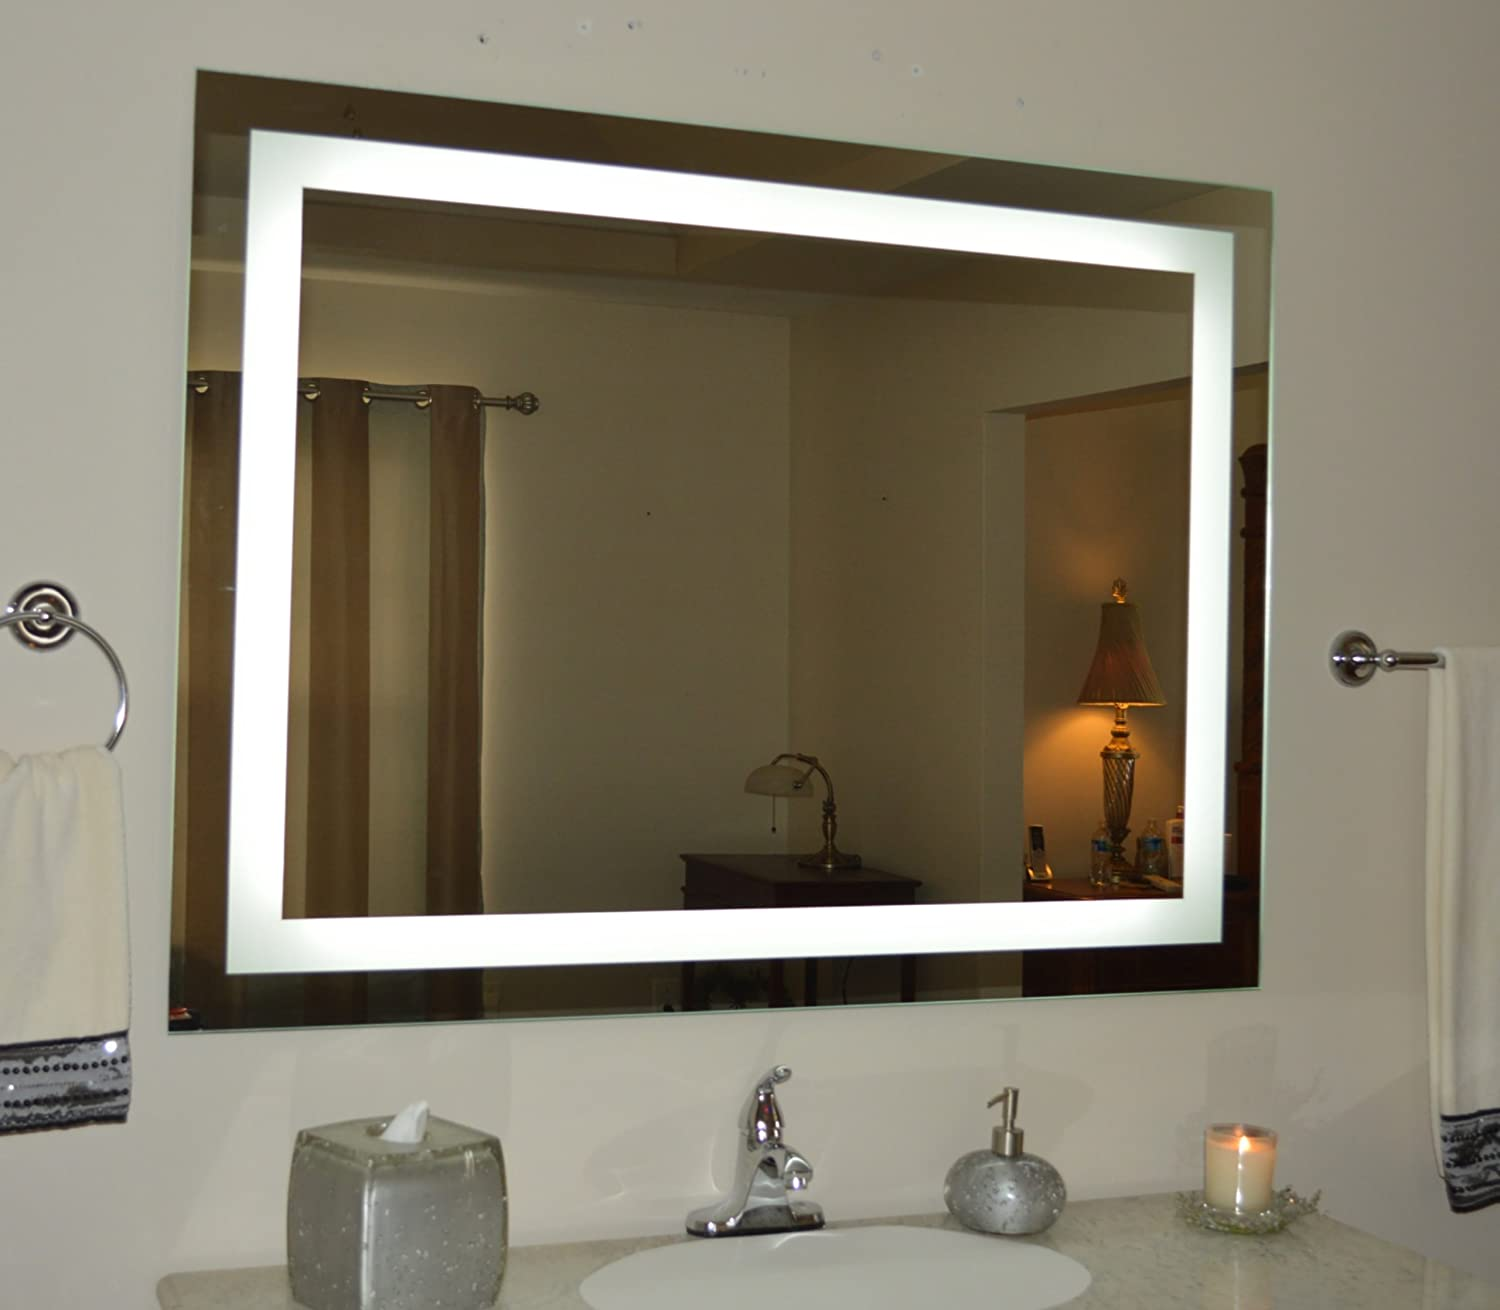 Amazon wall mounted lighted vanity mirror led mam84836 amazon wall mounted lighted vanity mirror led mam84836 commercial grade 48 home kitchen mozeypictures